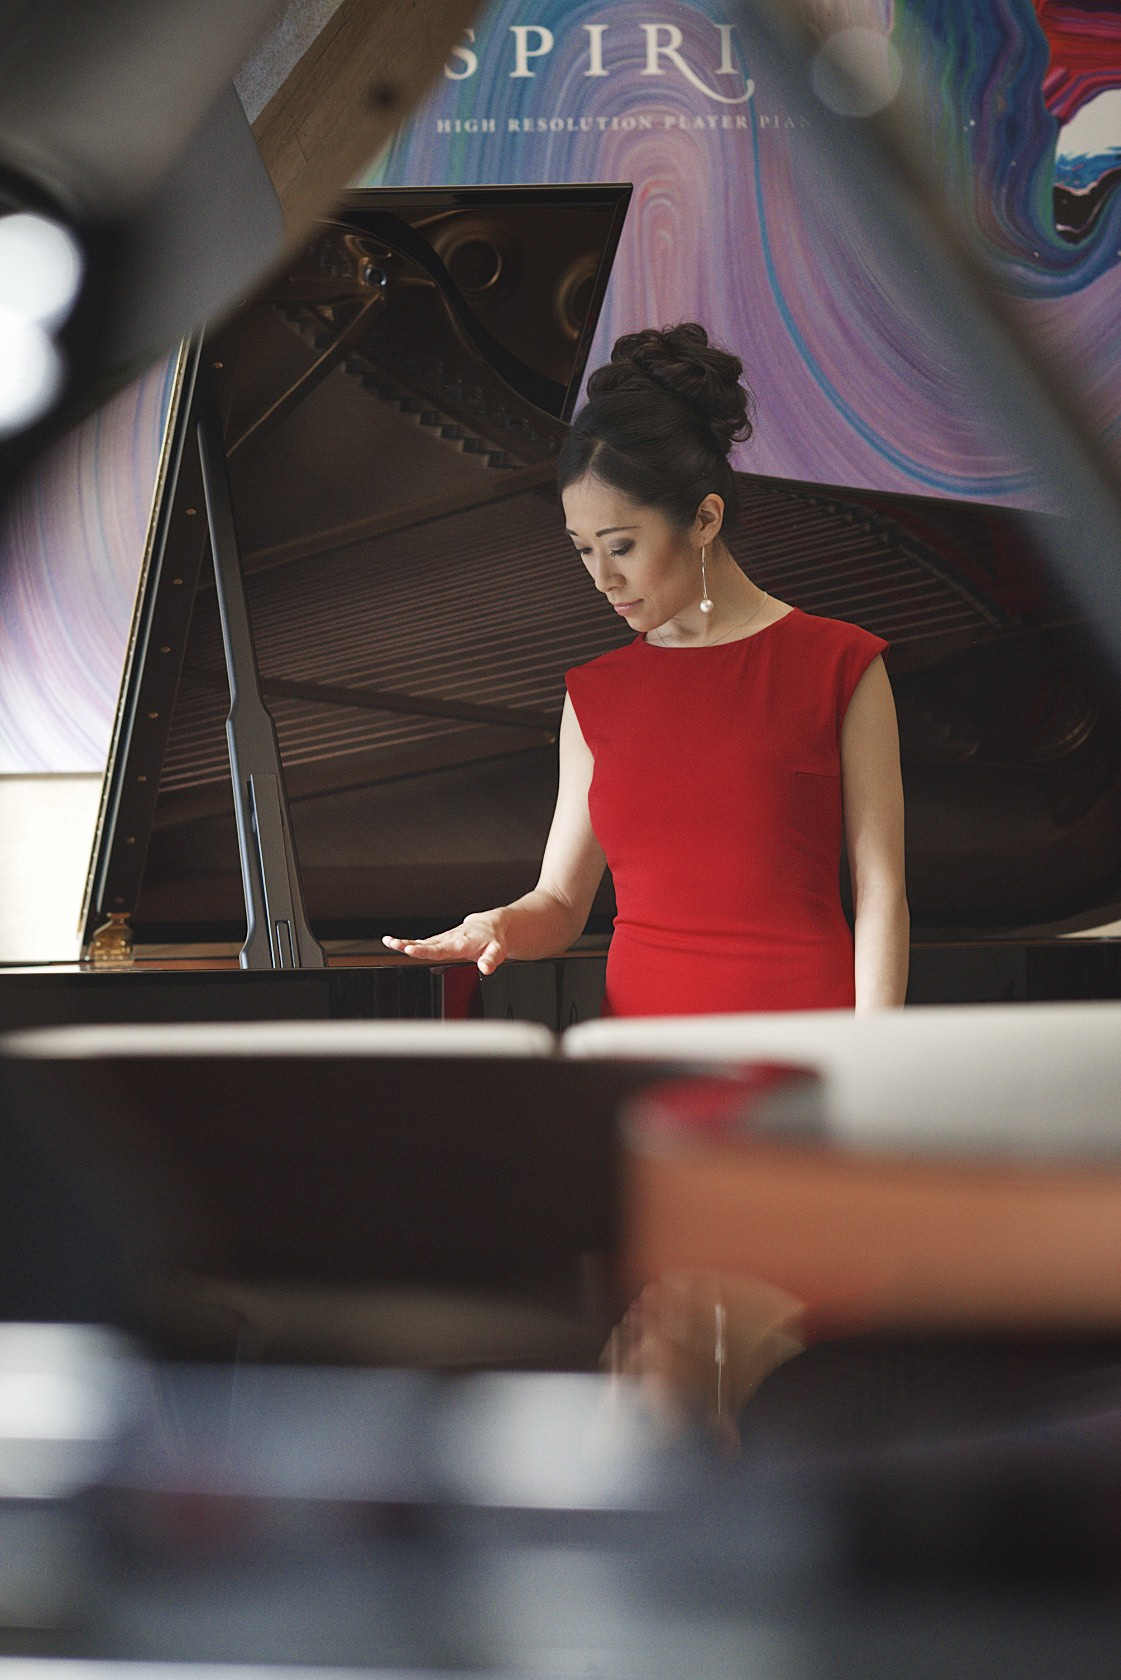 Aisa ljiri at Steinway & Sons (London) with the Steinway Spirio piano. Photo: Lugermad